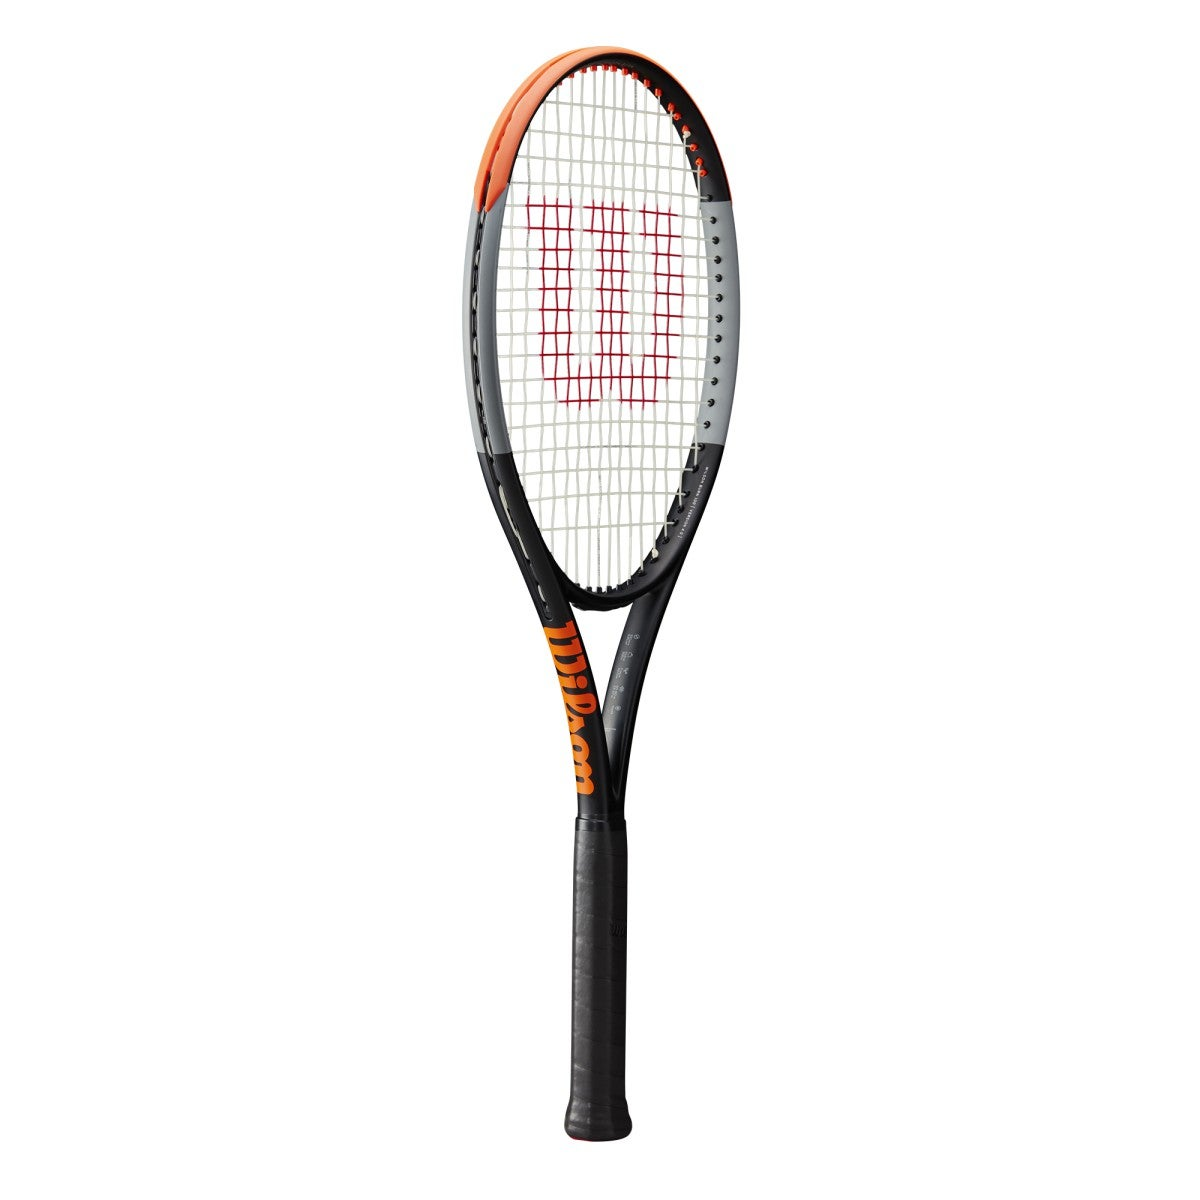 Burn 100 V4 Tennis Racket